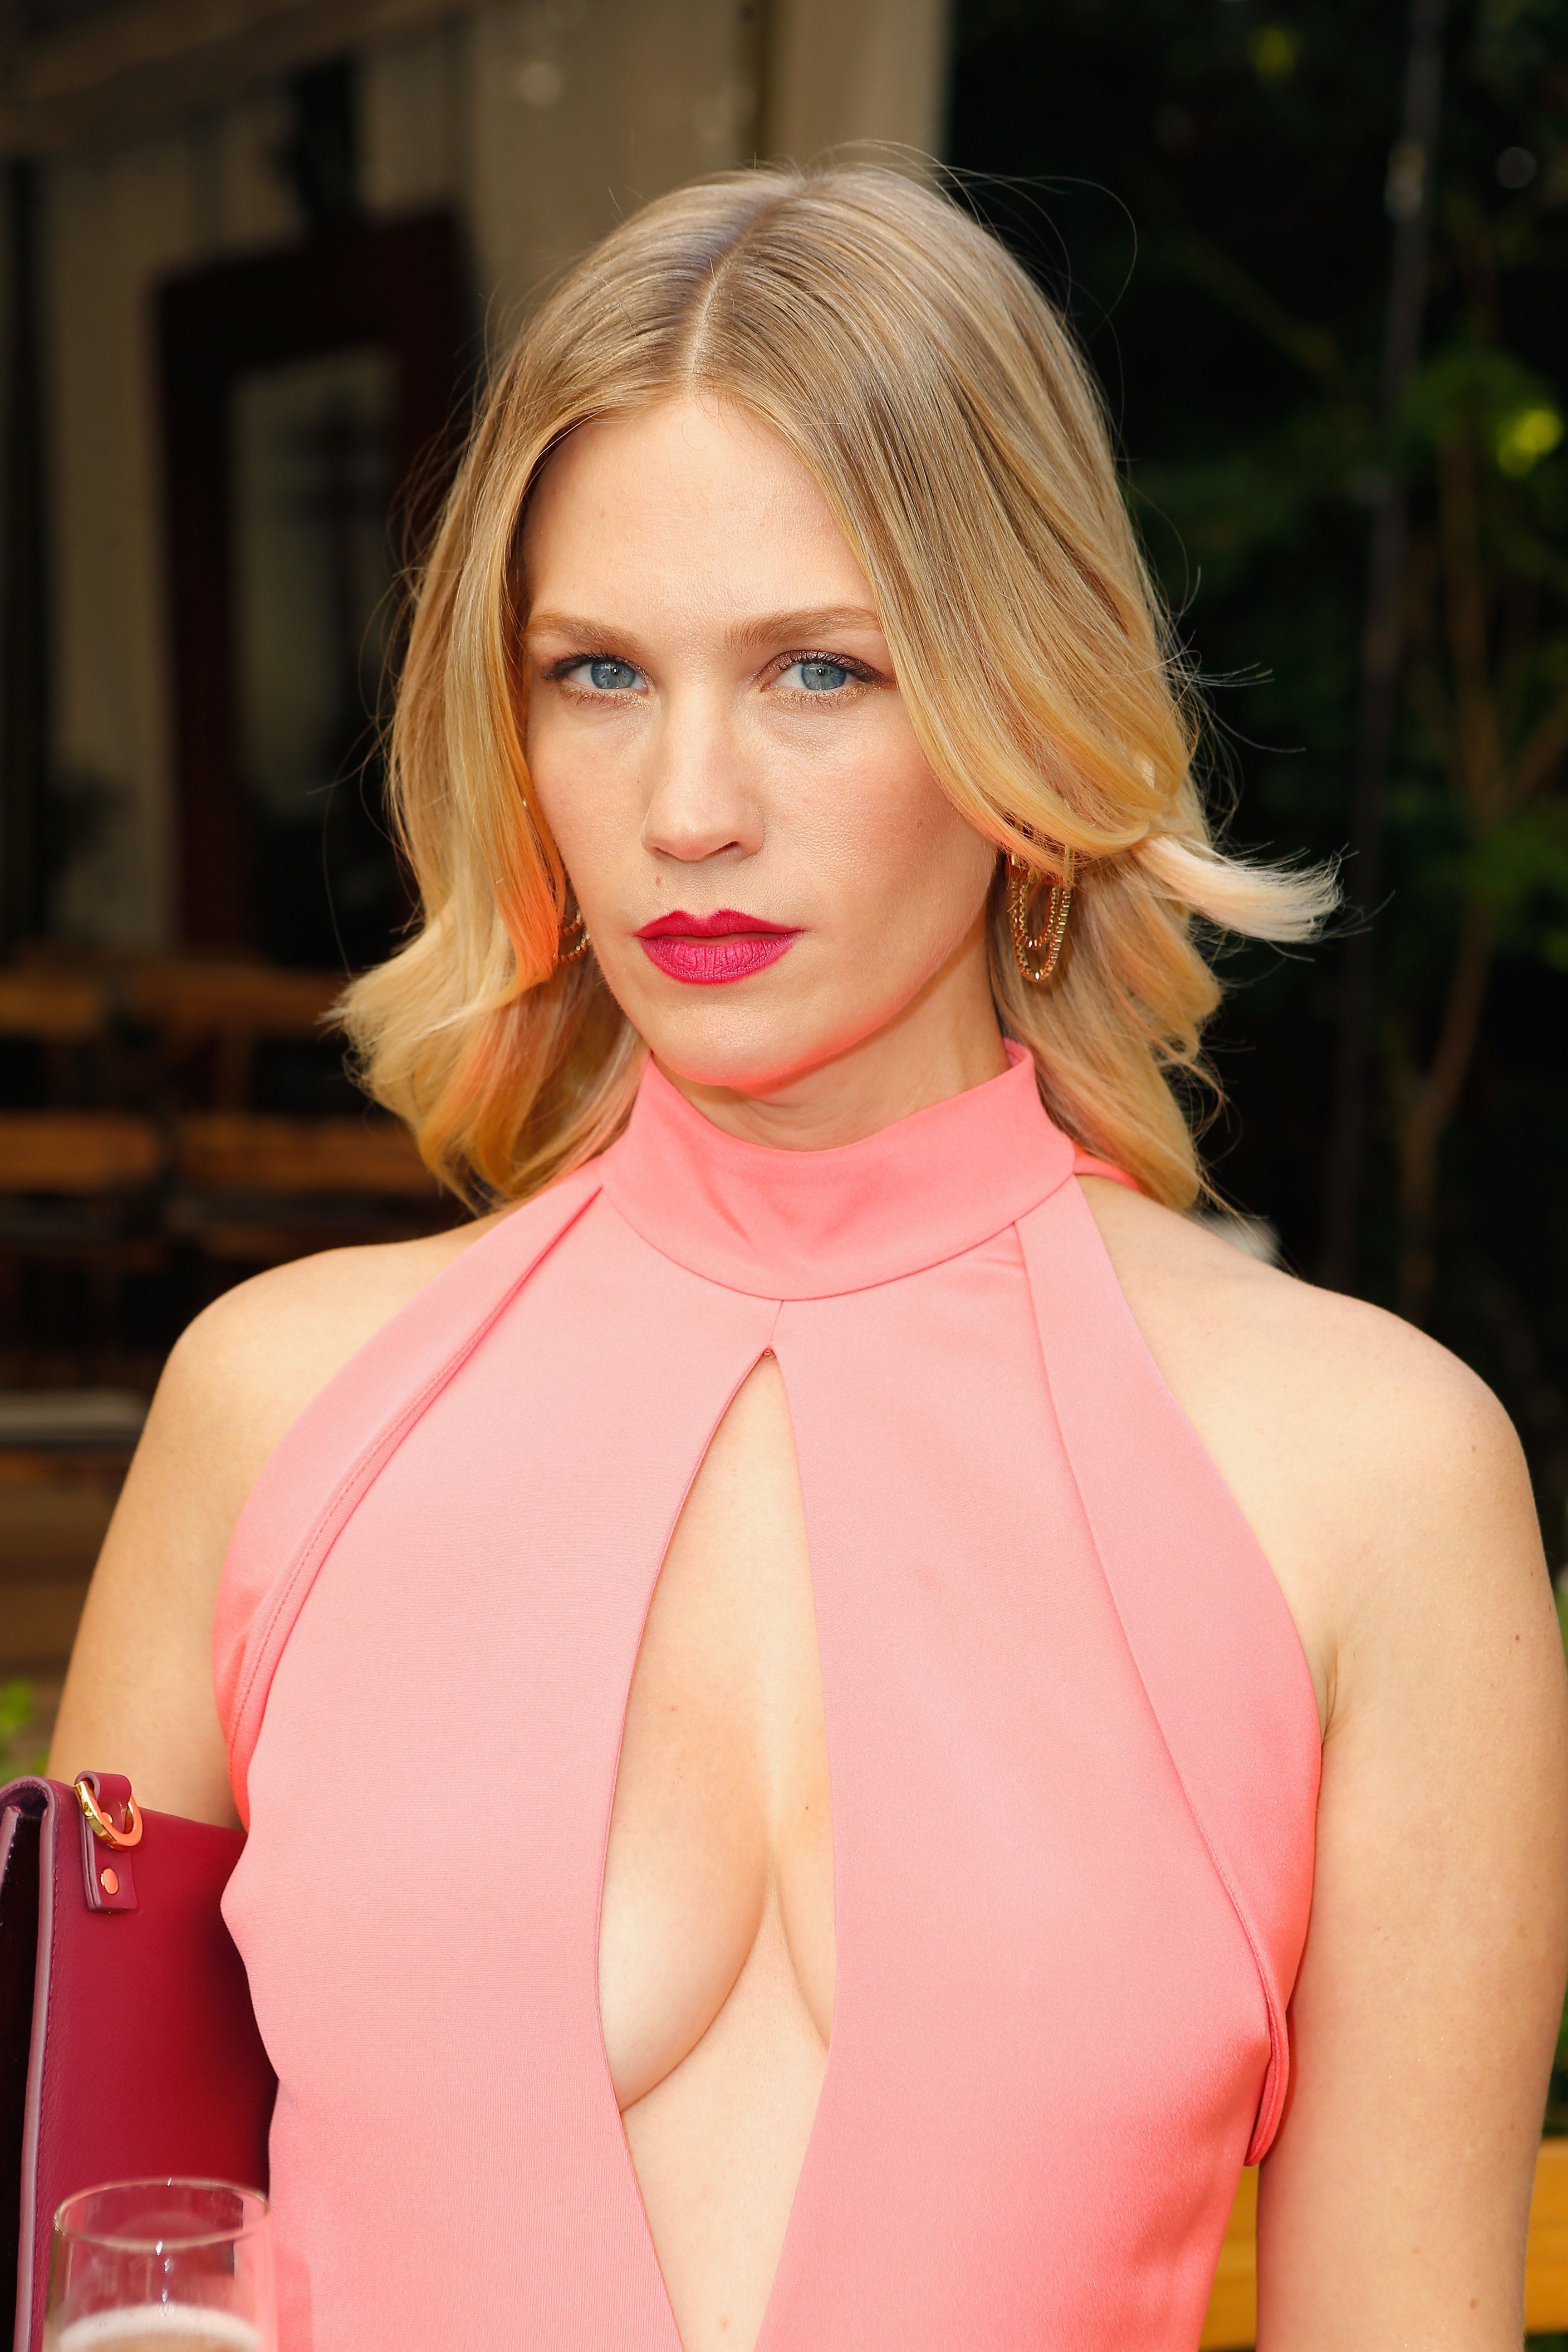 LOS ANGELES, CA - OCTOBER 26:  Actress January Jones at the CFDA/Vogue Fashion Fund Show and Tea presented by kate spade new york at Chateau Marmont on October 26, 2016 in Los Angeles, California.  (Photo by Jeff Vespa/Getty Images for CFDA/Vogue )